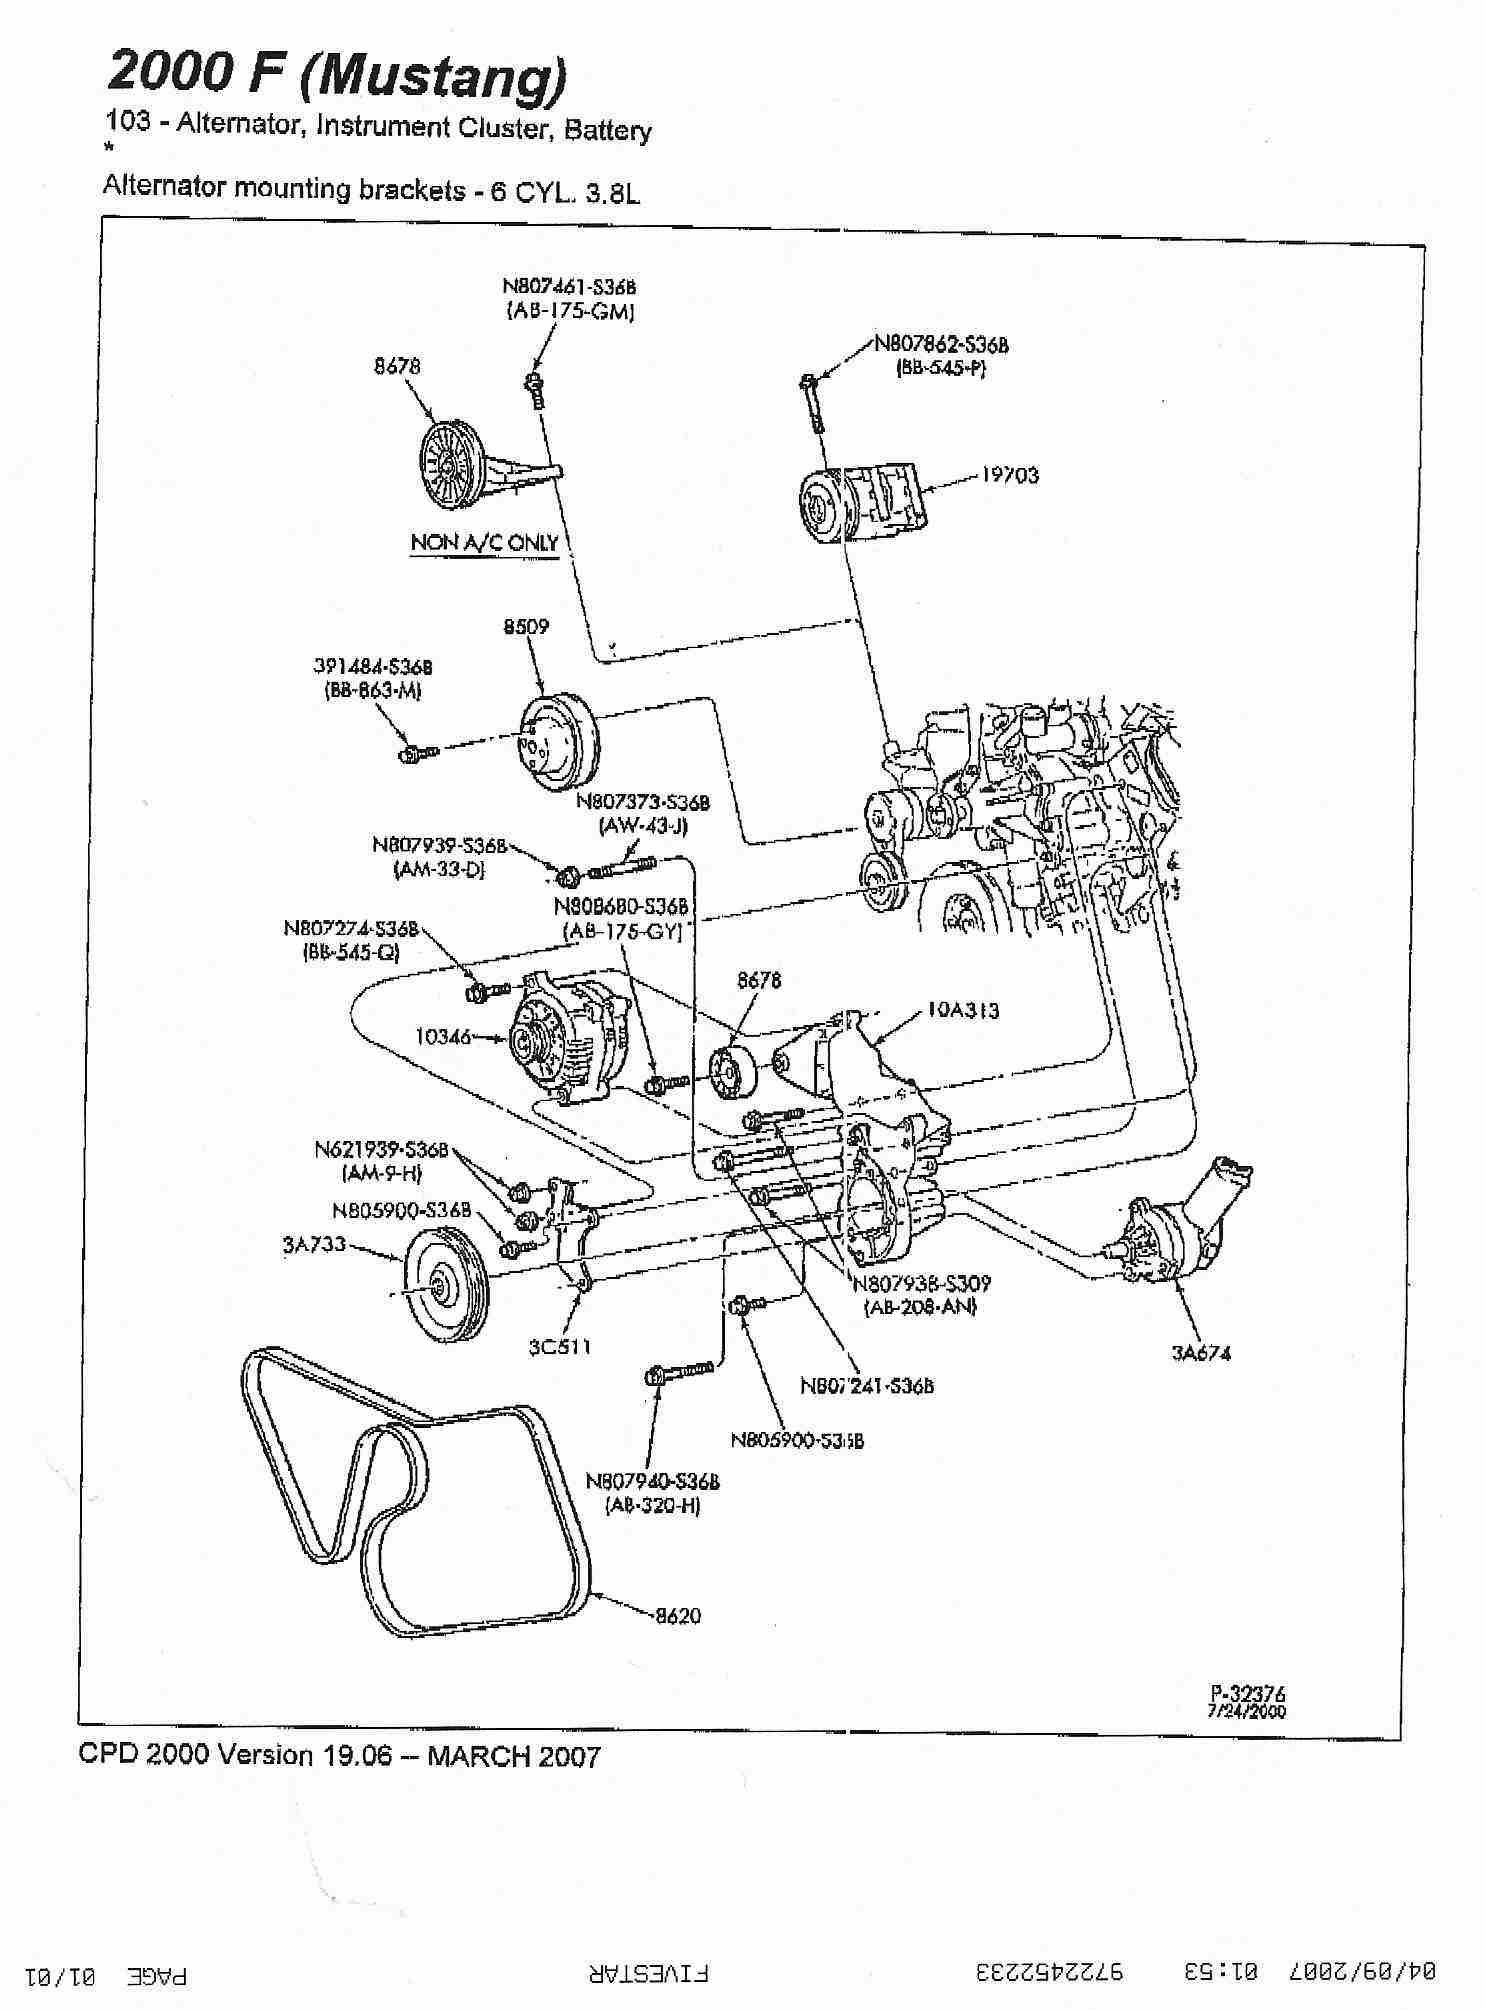 cooling system diagrams gm v6 electricity site GM 3.8L Engine Diagram gm 3800 engine coolant diagrams best wiring library